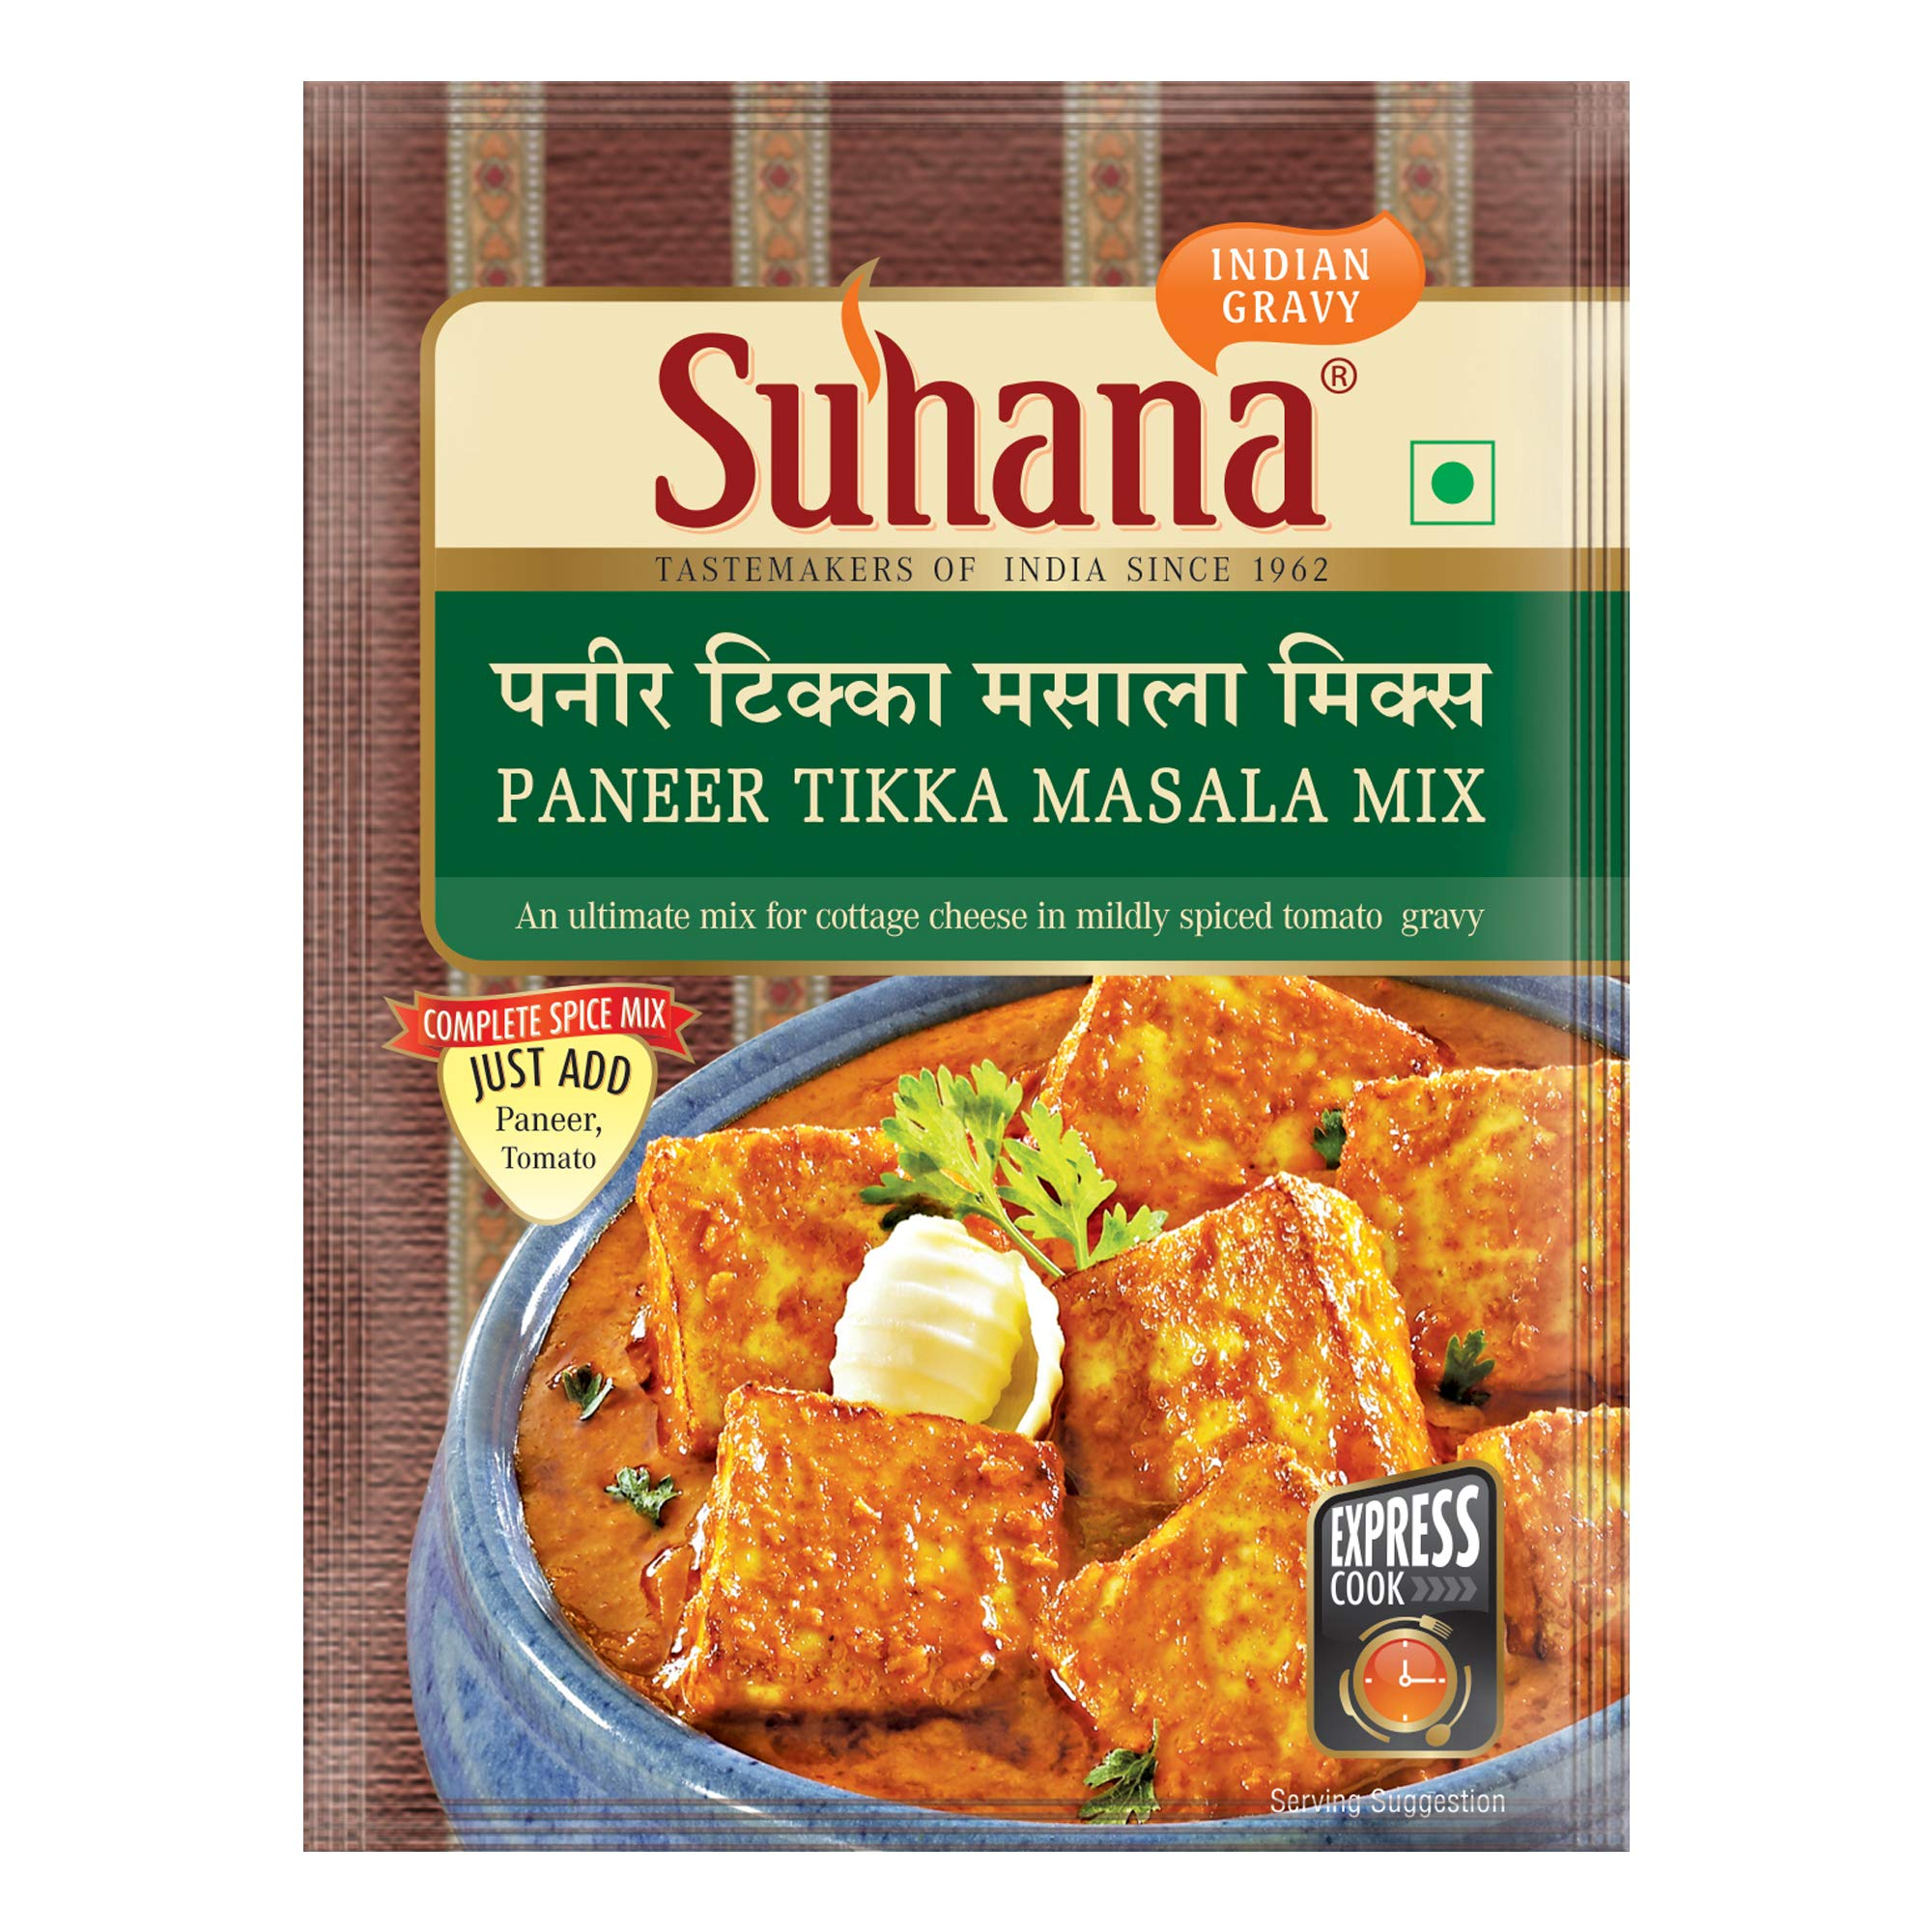 Suhana Paneer Tikka Masala 50g Pouch | Spice Mix | Easy to Cook | Pack of 3